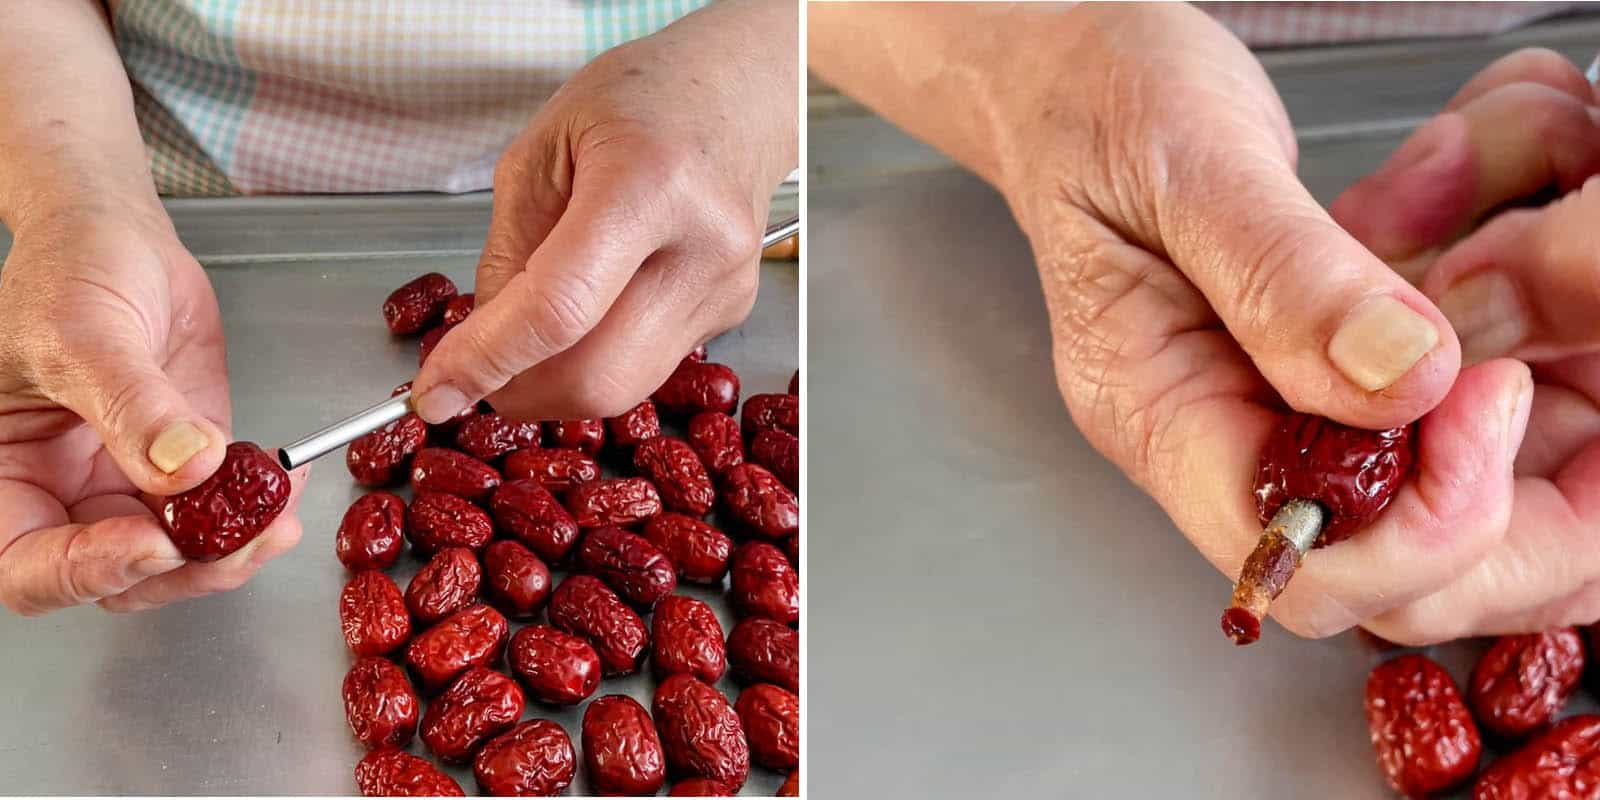 Pitting Red Dates with Stainless Steel Straw